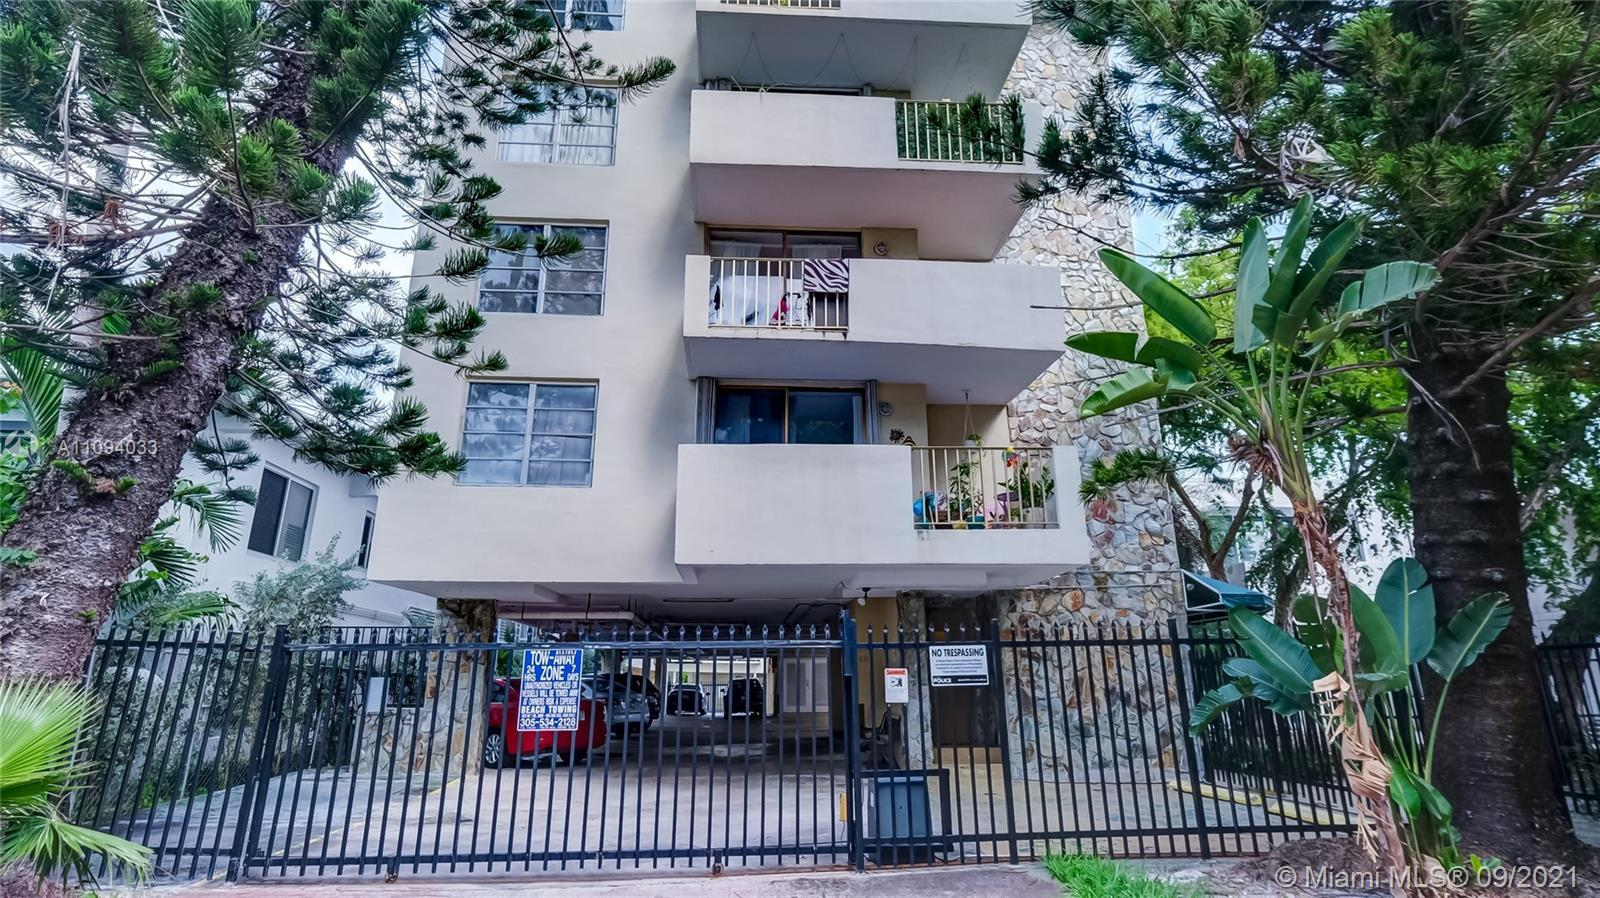 Spacious 1/1 located on a beautiful tree-lined Jefferson Ave. The unit has an open Balcony, a sunny